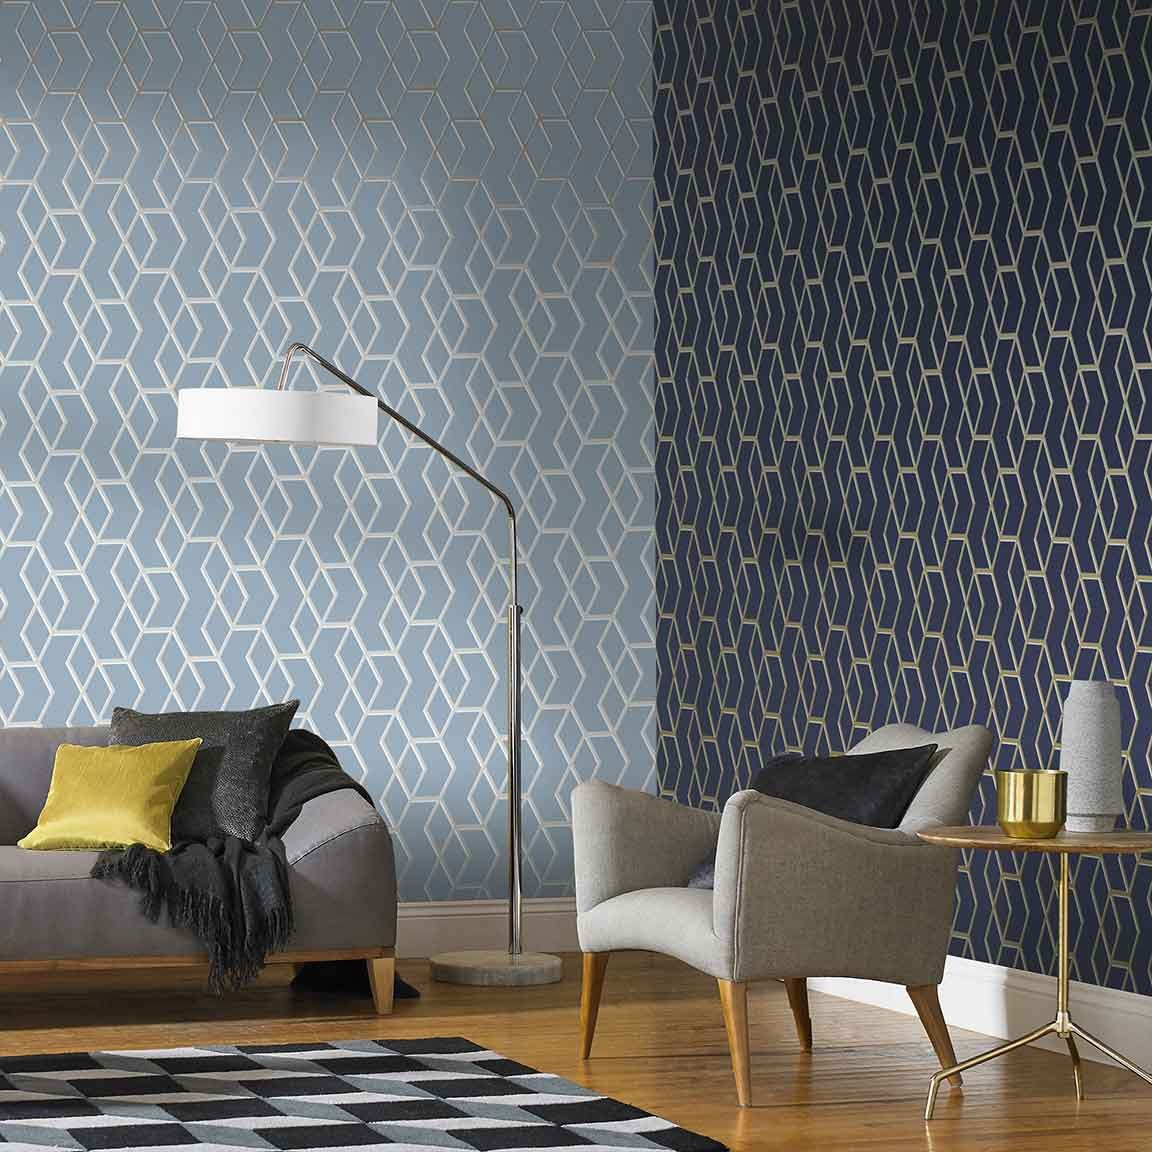 Contemporary Living Room Wallpaper Beautiful Make Your Rooms Pop with these Unique Accent Wall Ideas